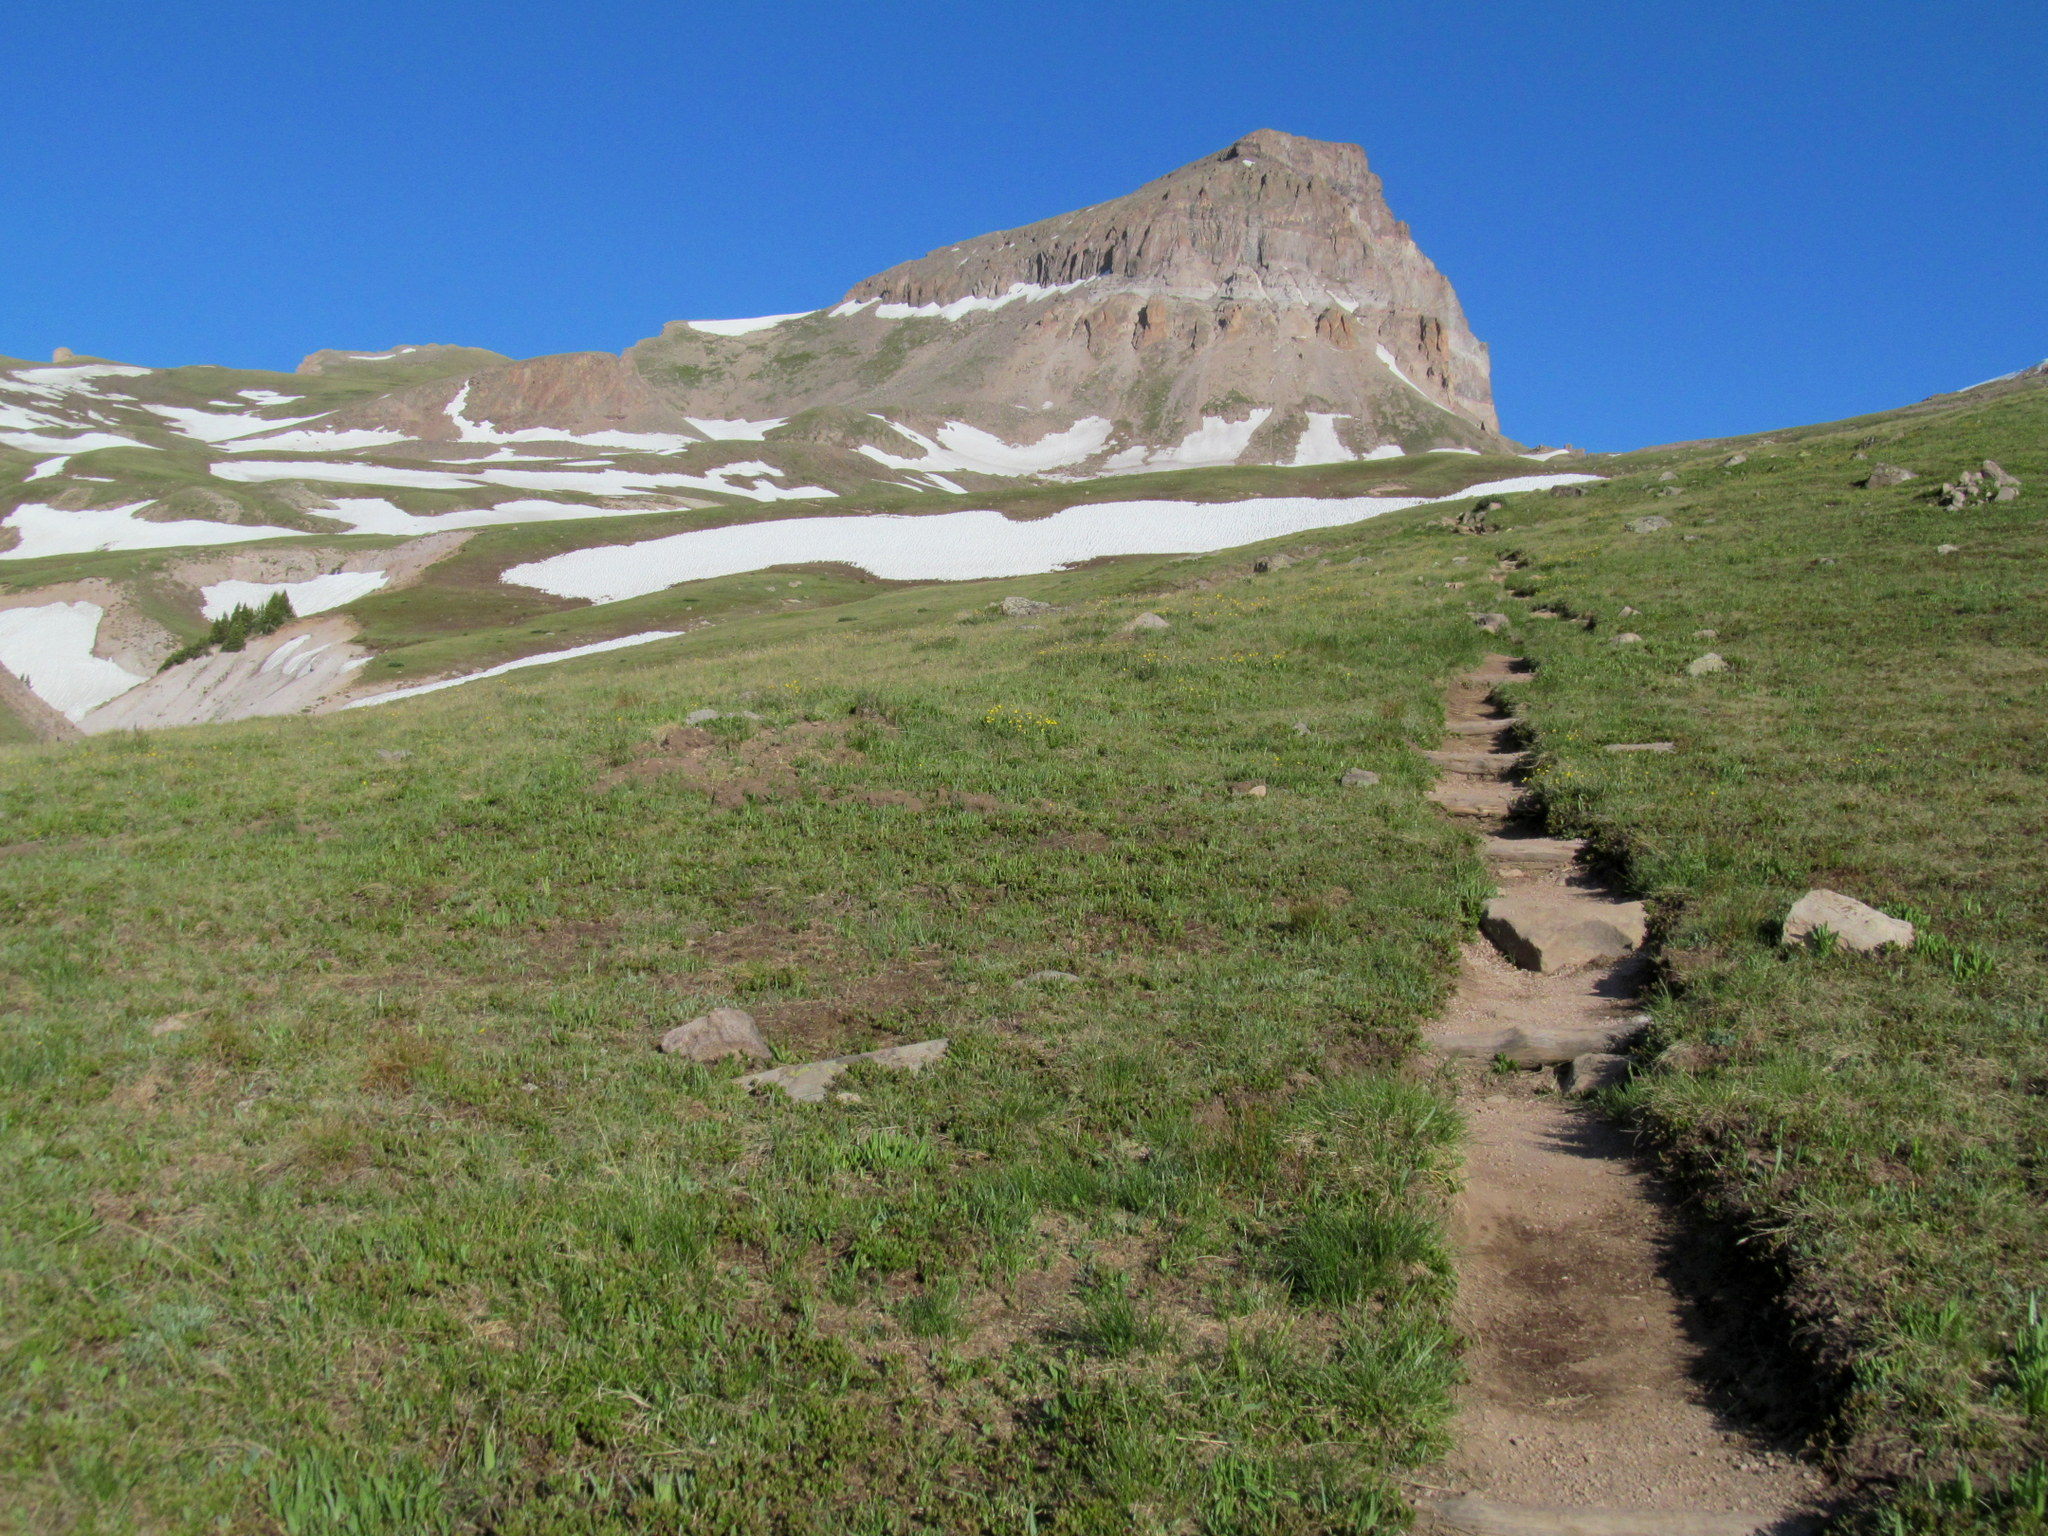 Photo: Approaching the steeper section of trail